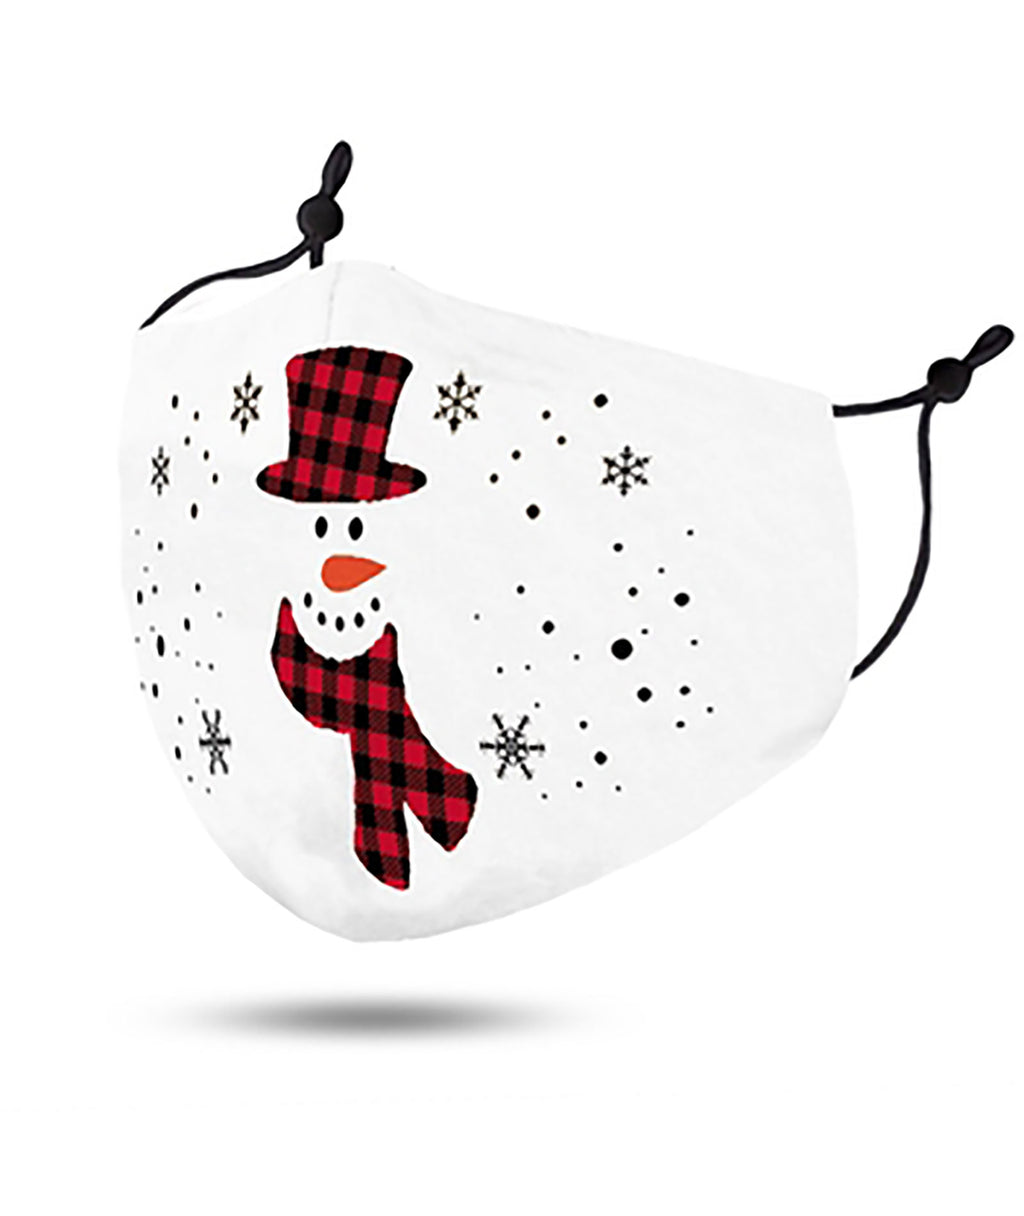 Confetti & Friends White Snowman Mask